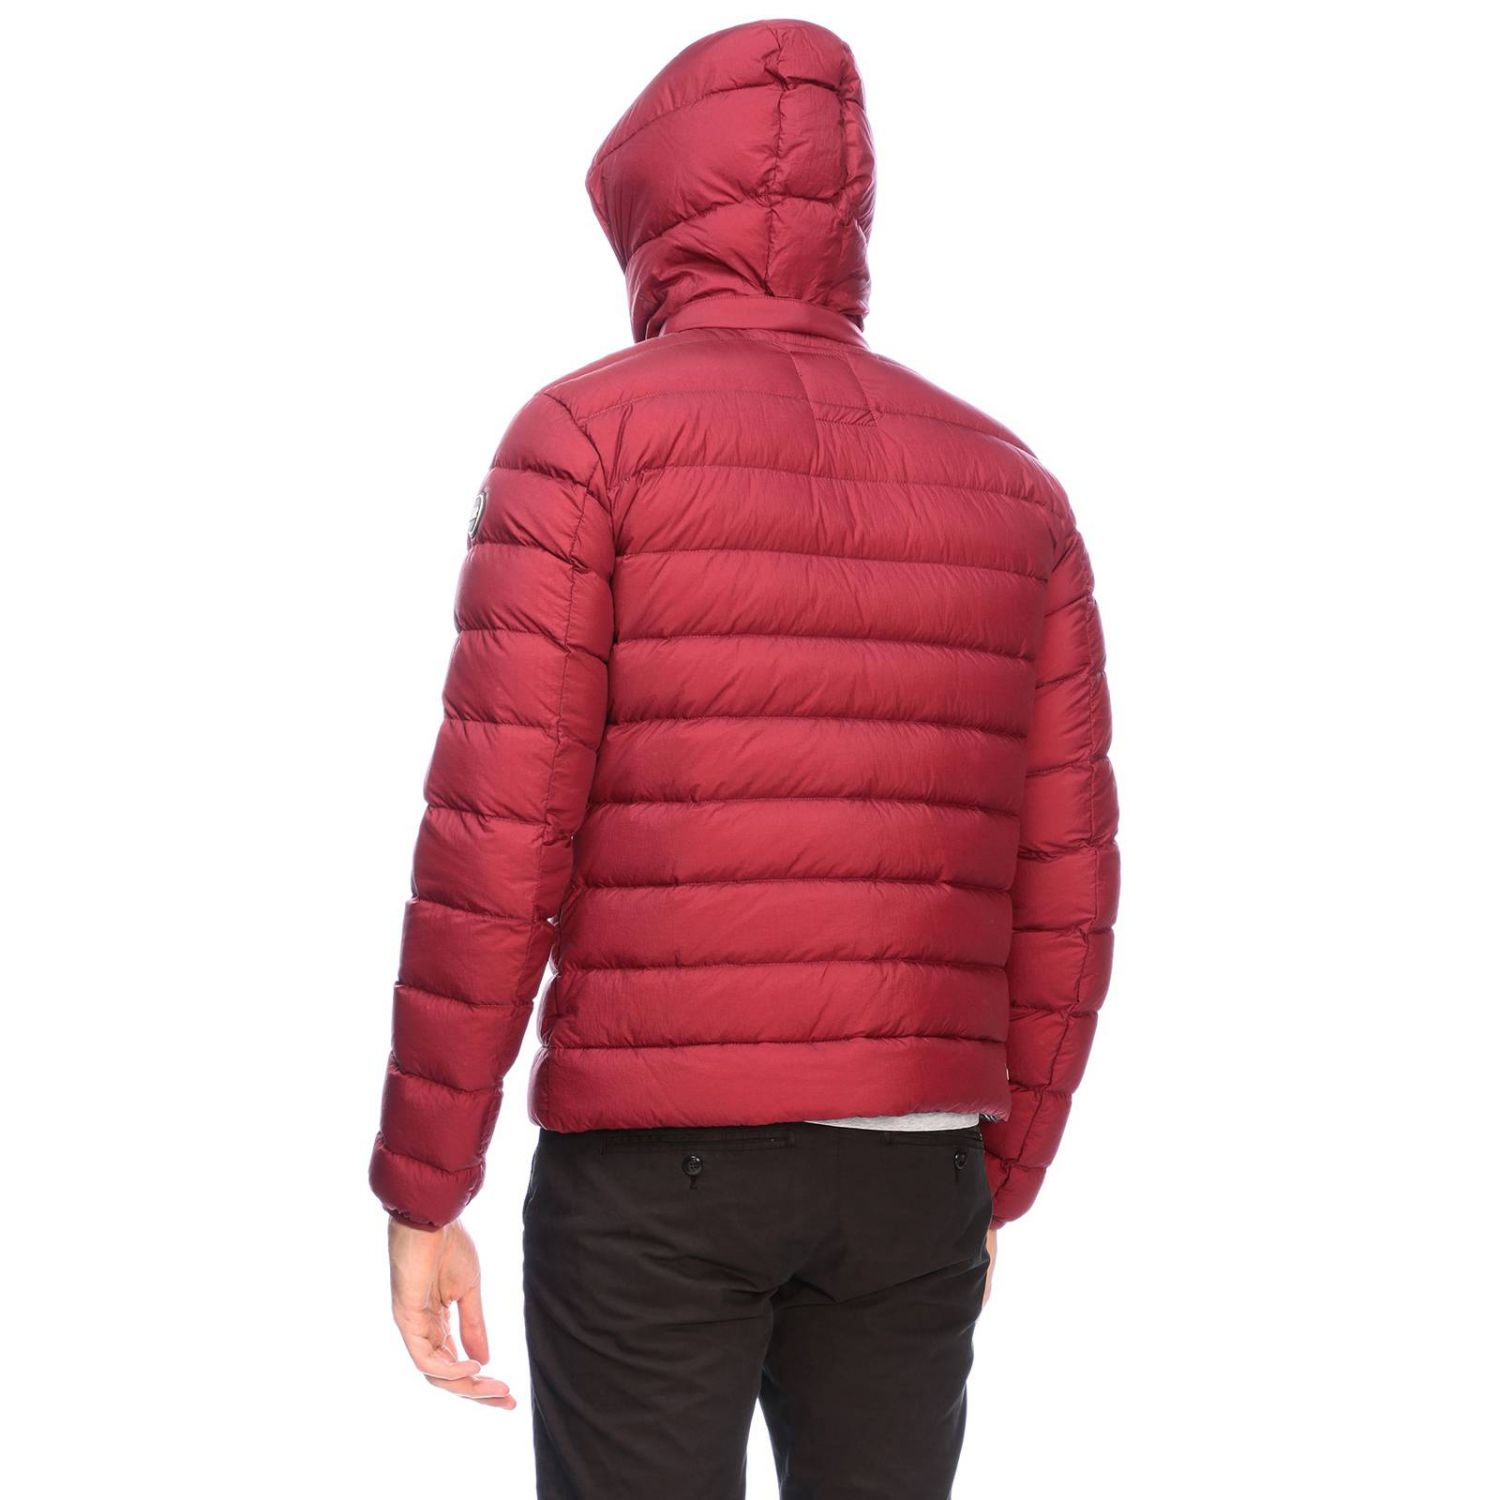 Jacket men Colmar burgundy 3